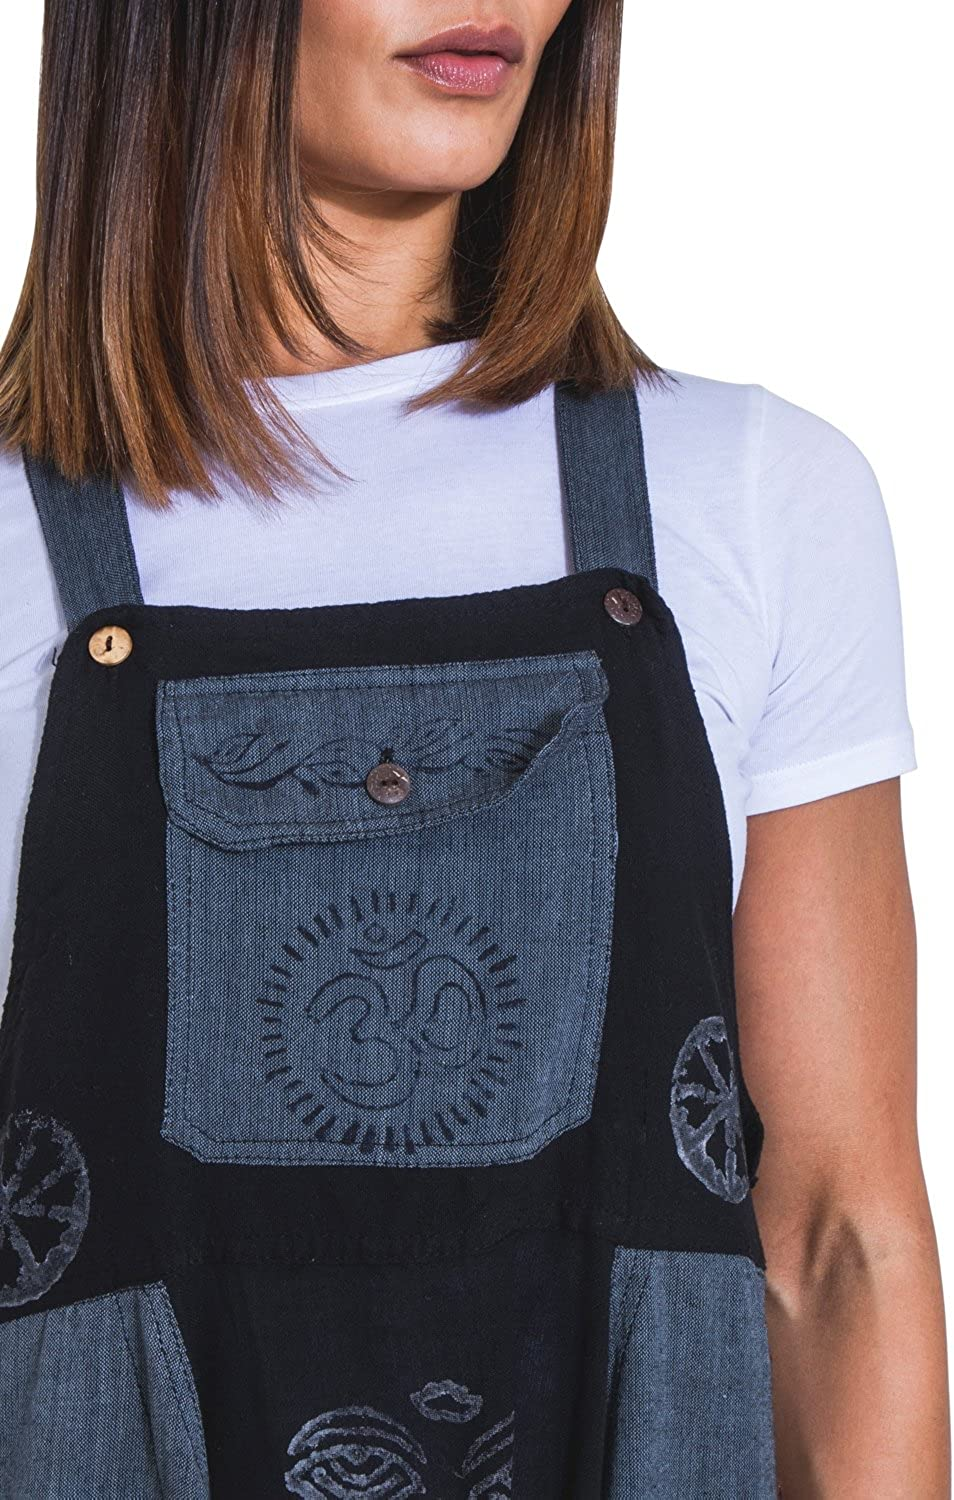 Wash Clothing Company Baggy Harem Dungarees Black-Blue Bib Overalls Boho Jumpsuit OPELDARK